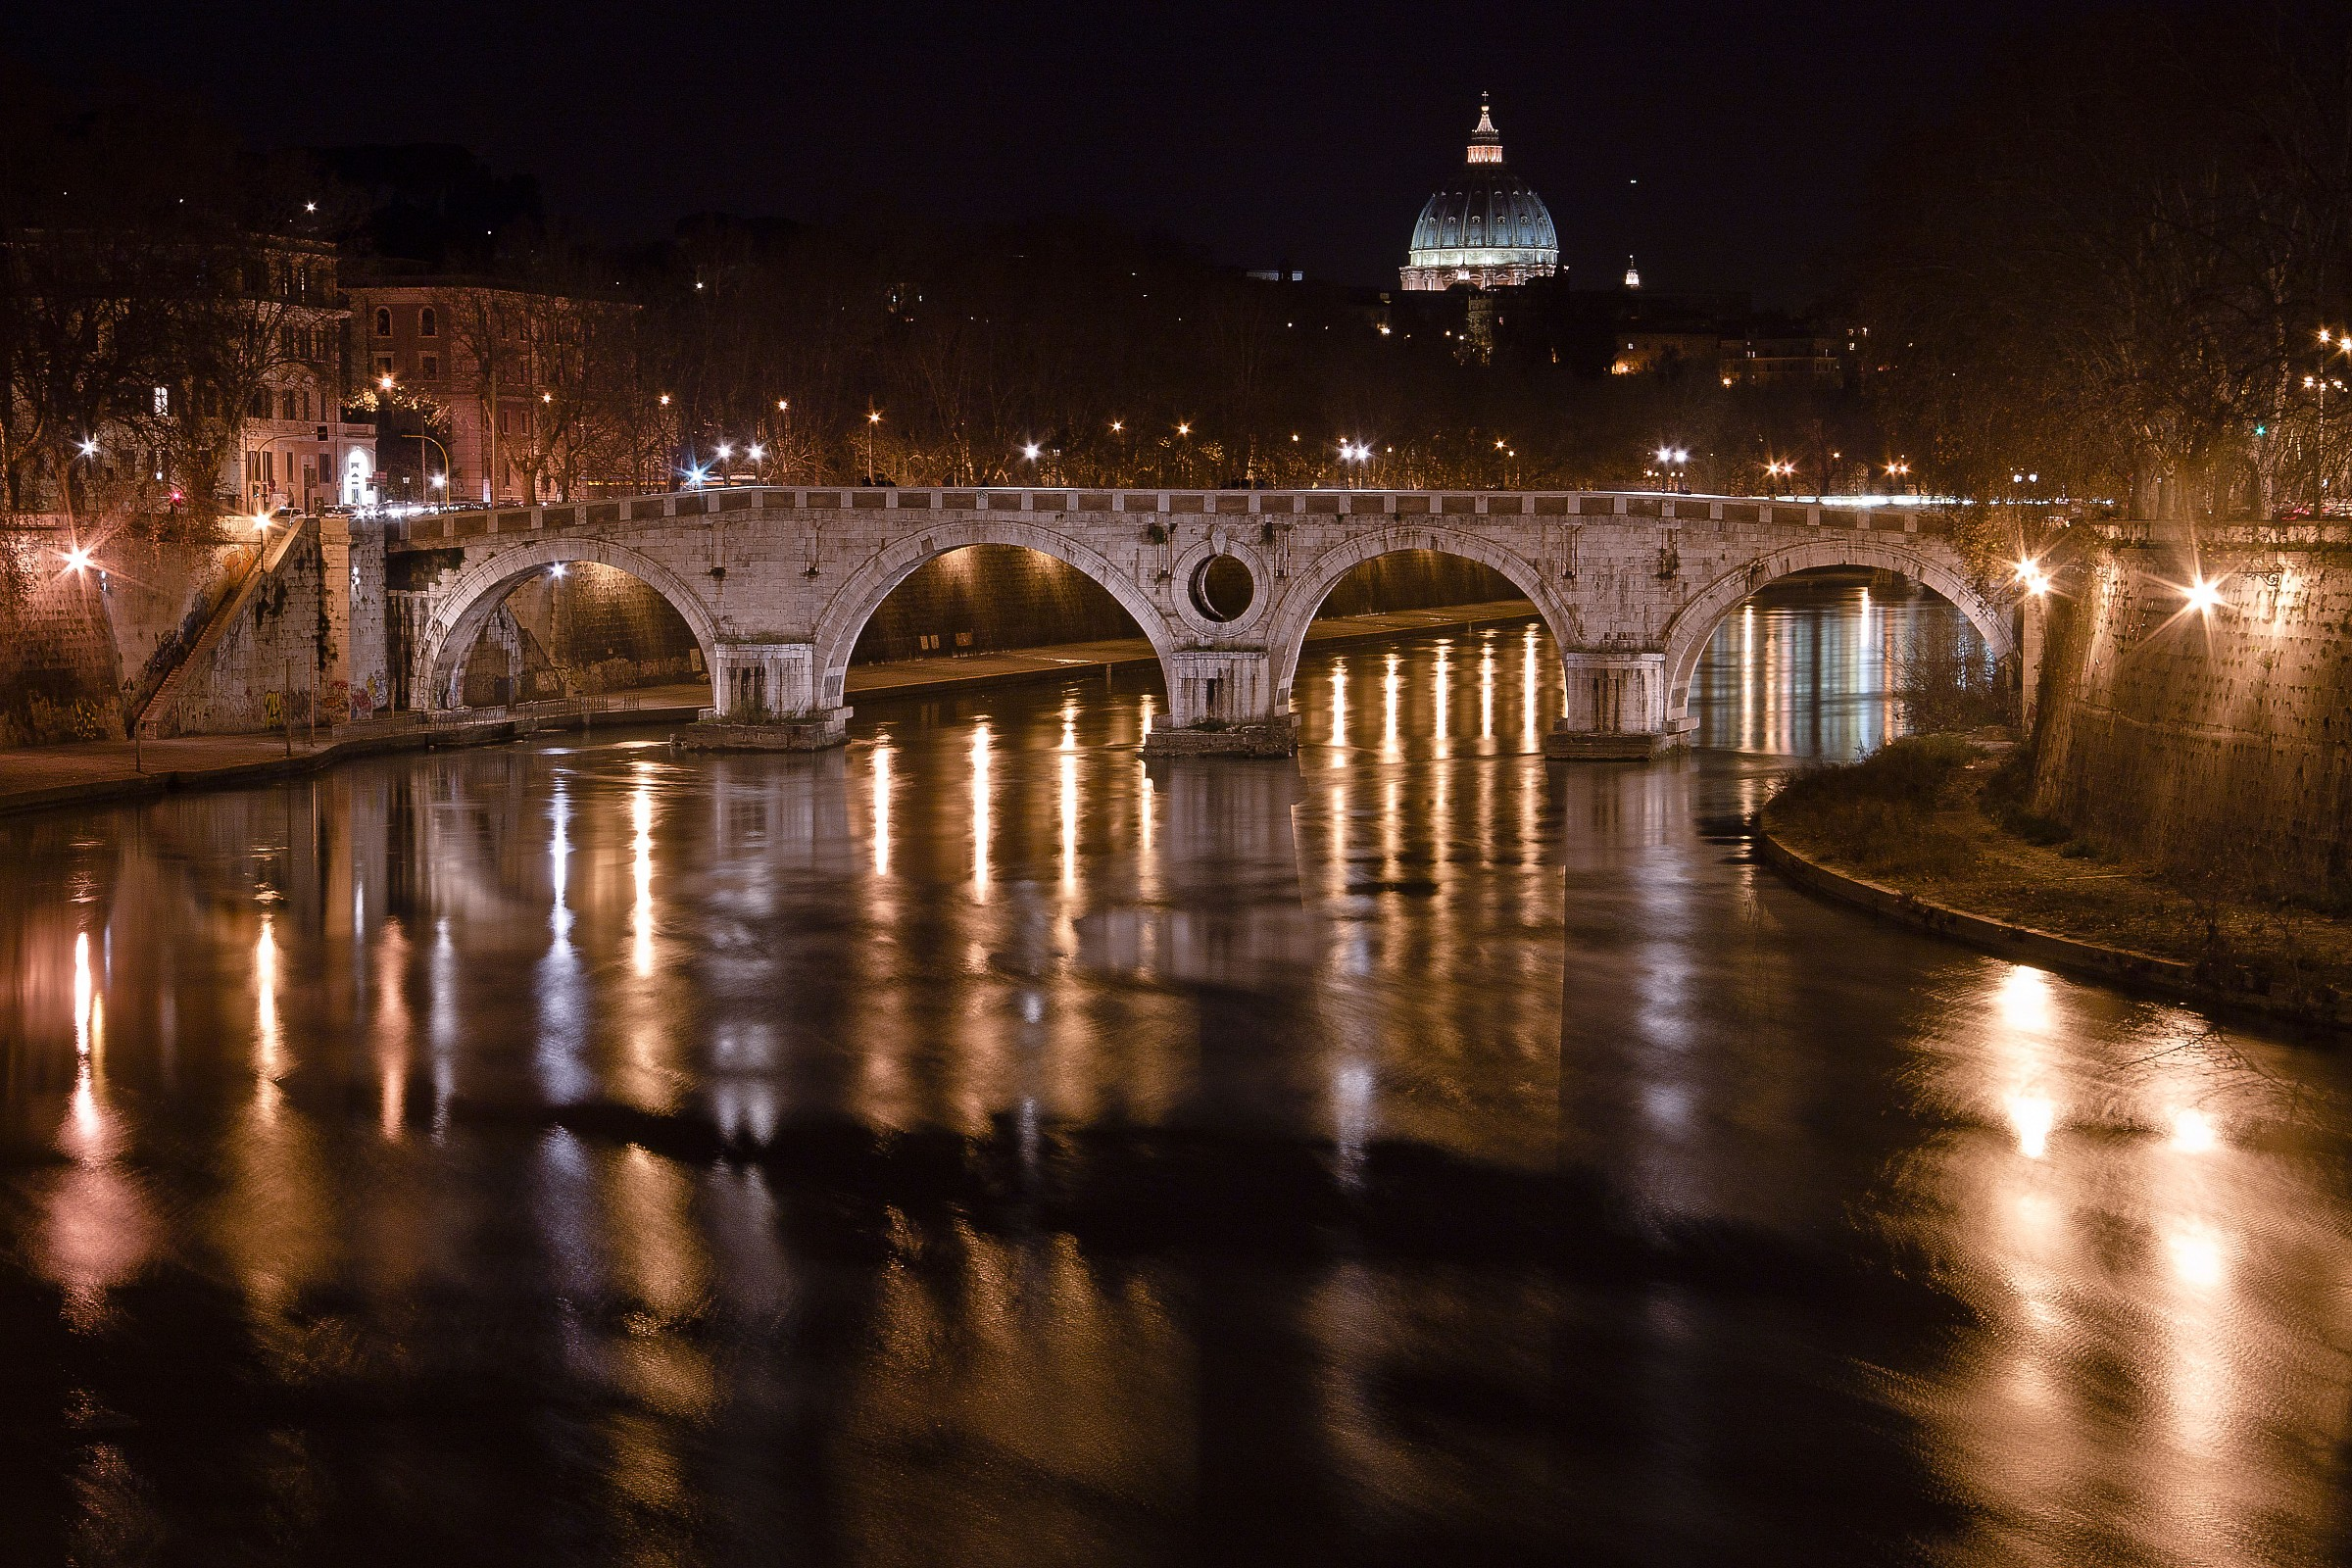 The flow of the Tiber...